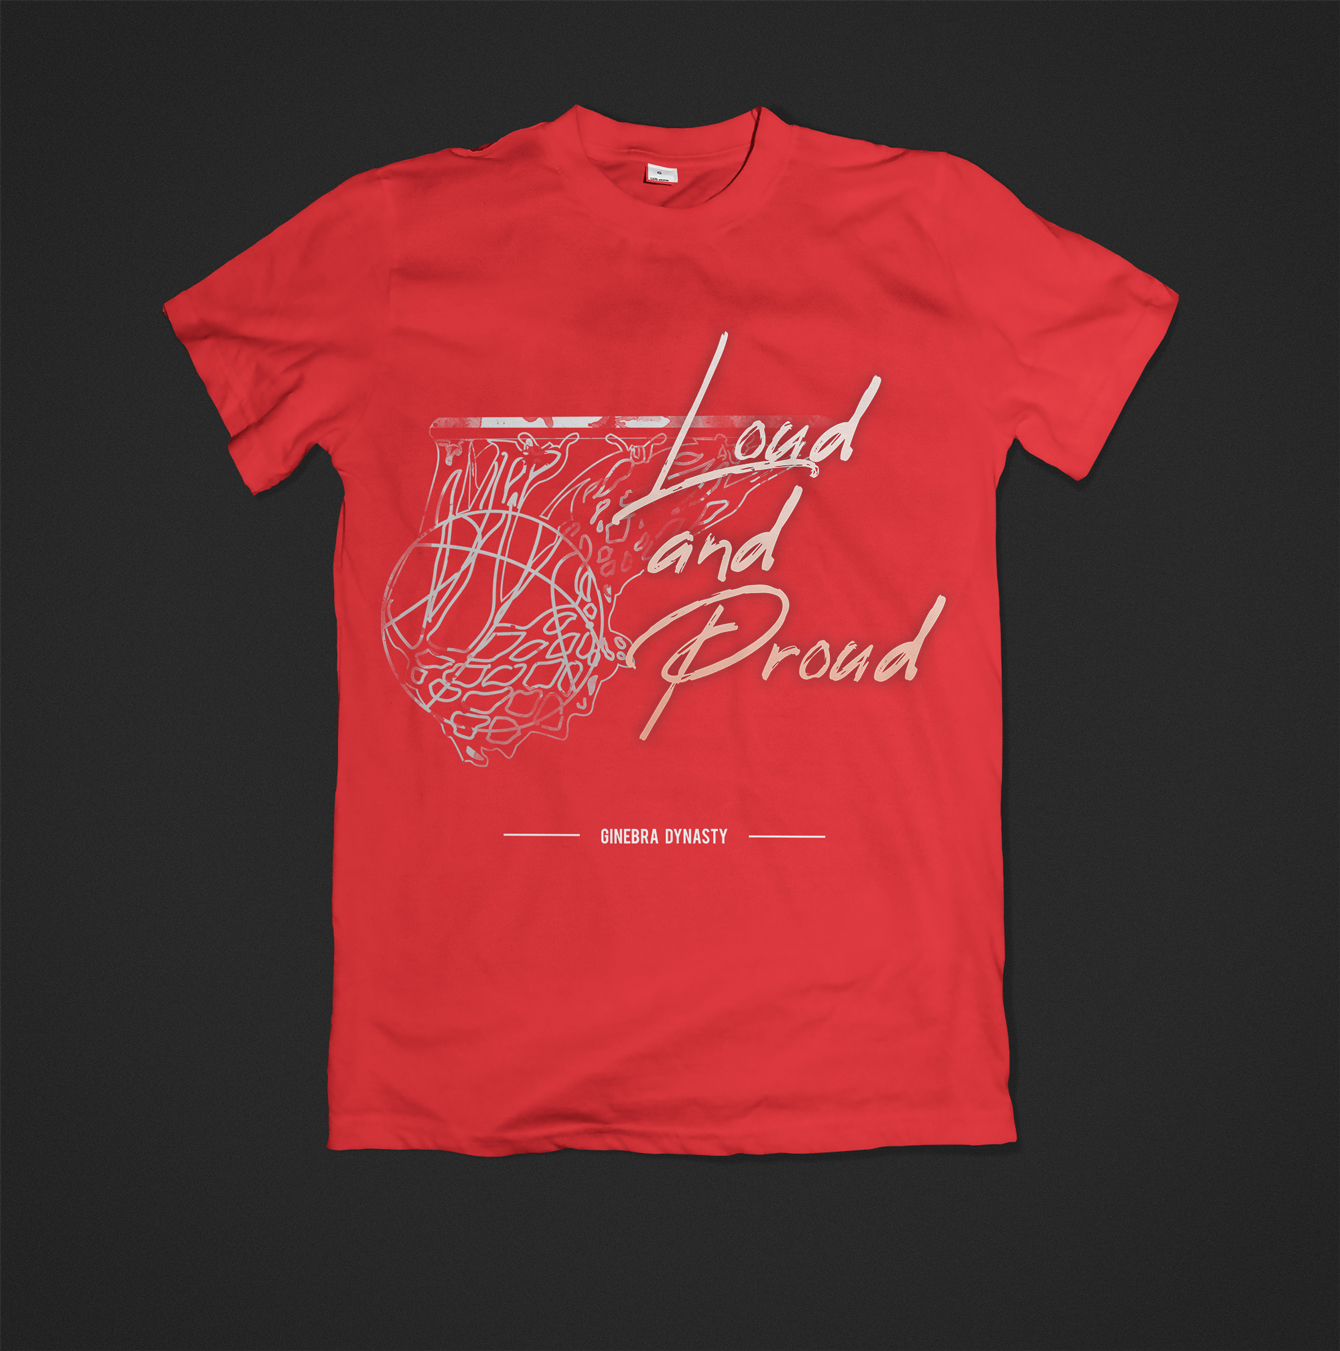 Bold Playful T Shirt Design For A Company By Roberthill Design